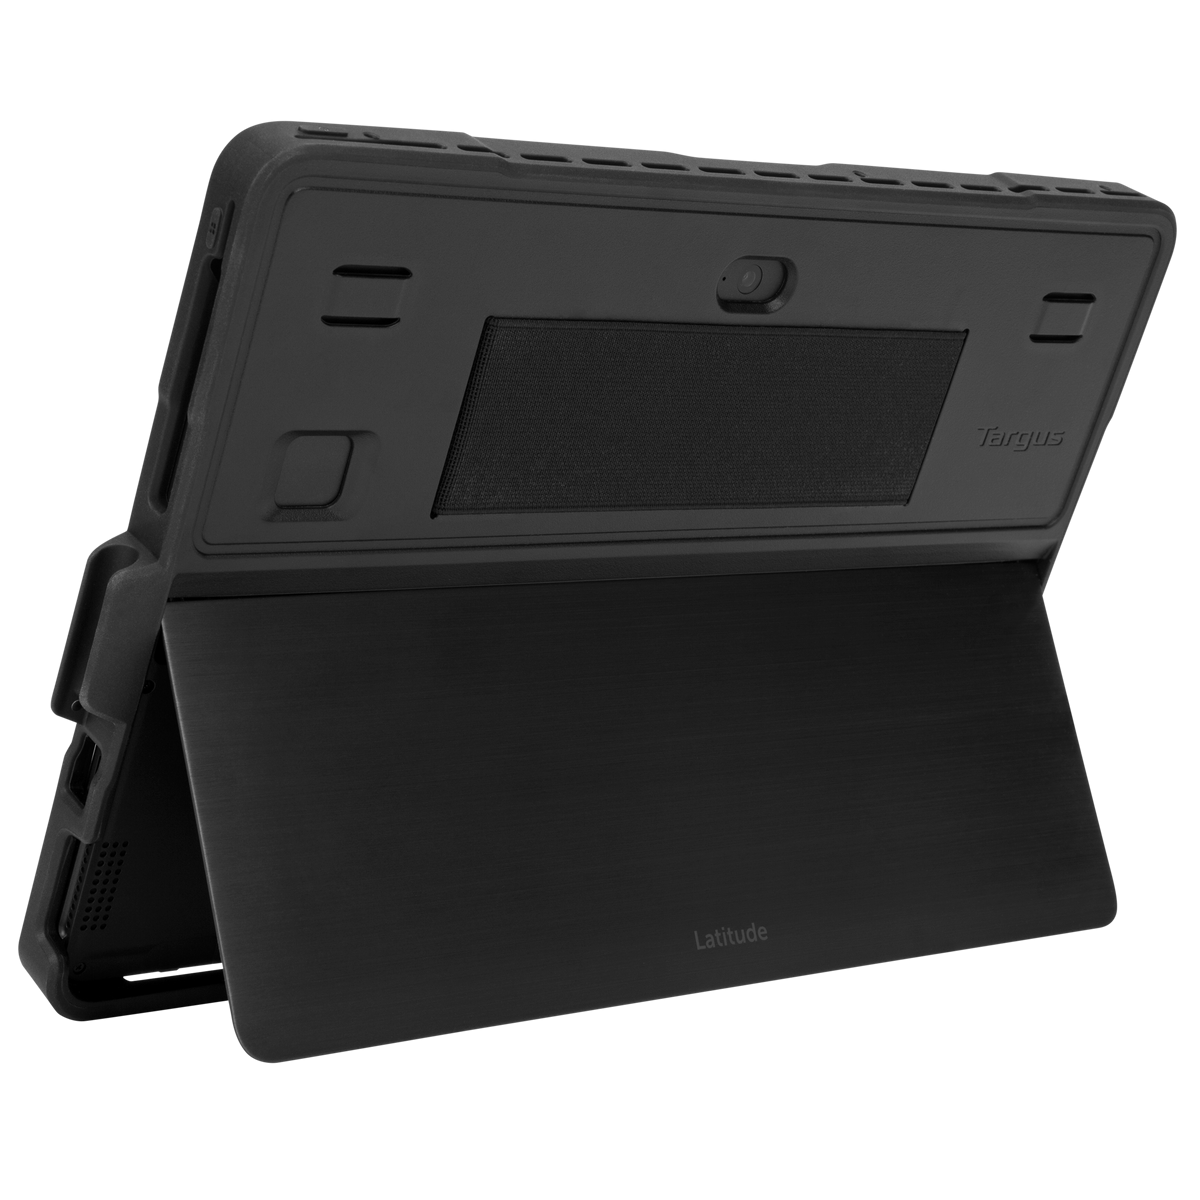 ssd rugged dell latitude extreme rug win geb importhubviewitem touch